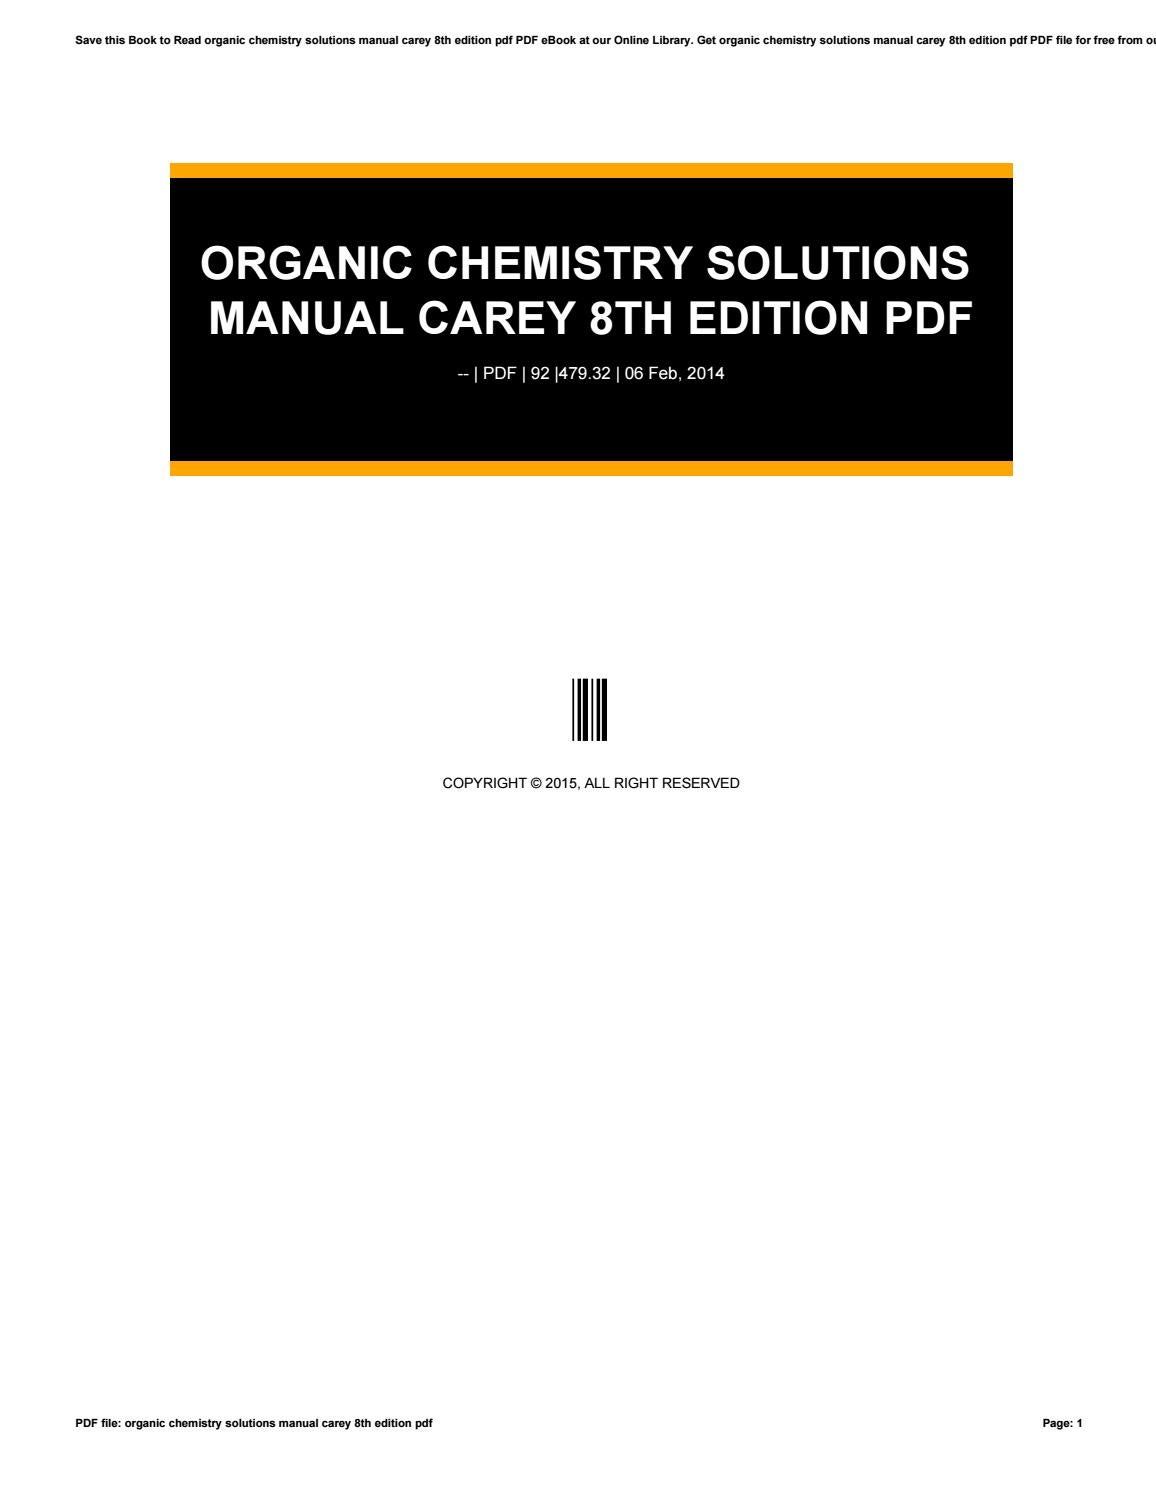 Organic chemistry 7th edition wade solution manual pdf 6633661 atkins physical chemistry 8th edition scribdfree download chemistry books chemistrycompkpdf solutions adobe communitybibme free bibliography amp citation fandeluxe Choice Image